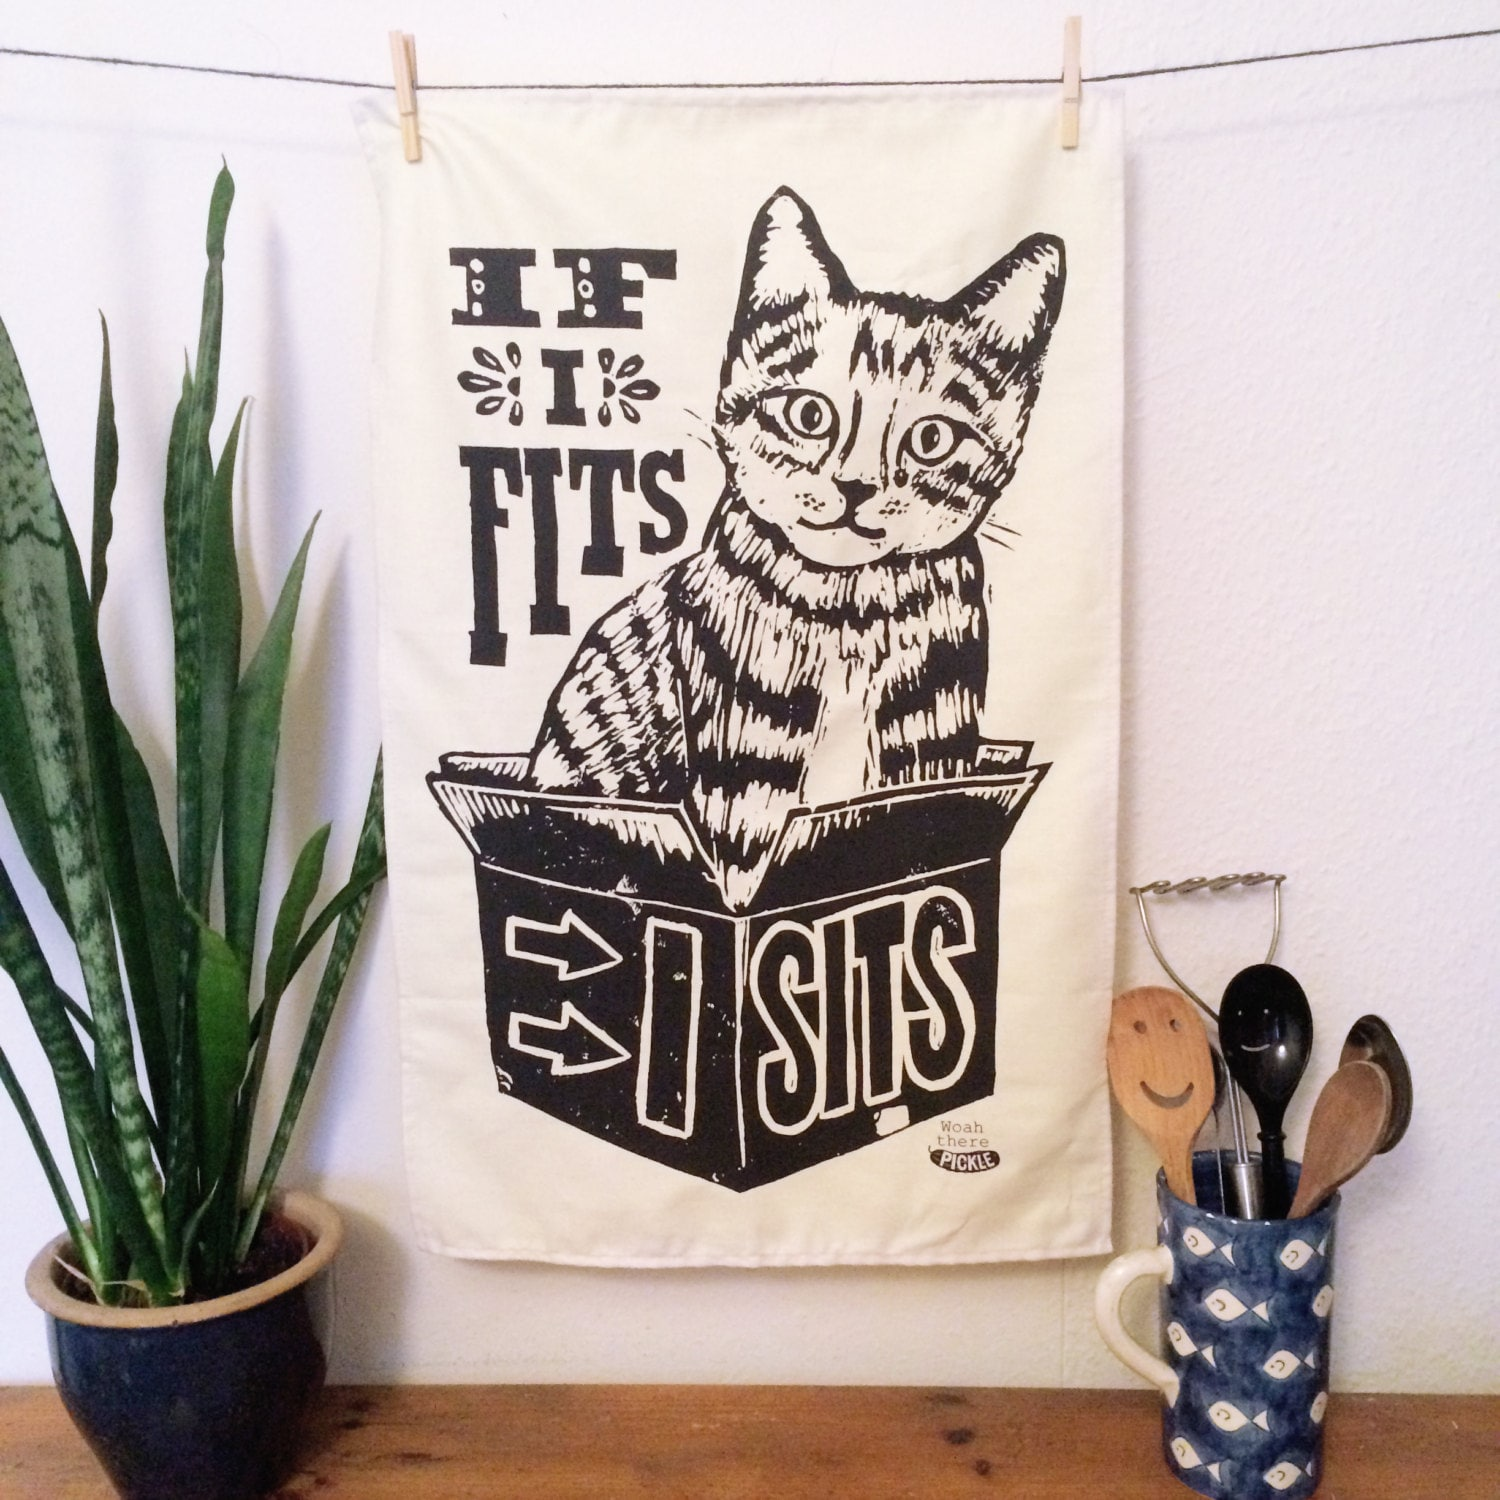 If I Fits Cat Tea Towel From Linocut 100 Cotton Kitchen: gifts for kitchen lovers